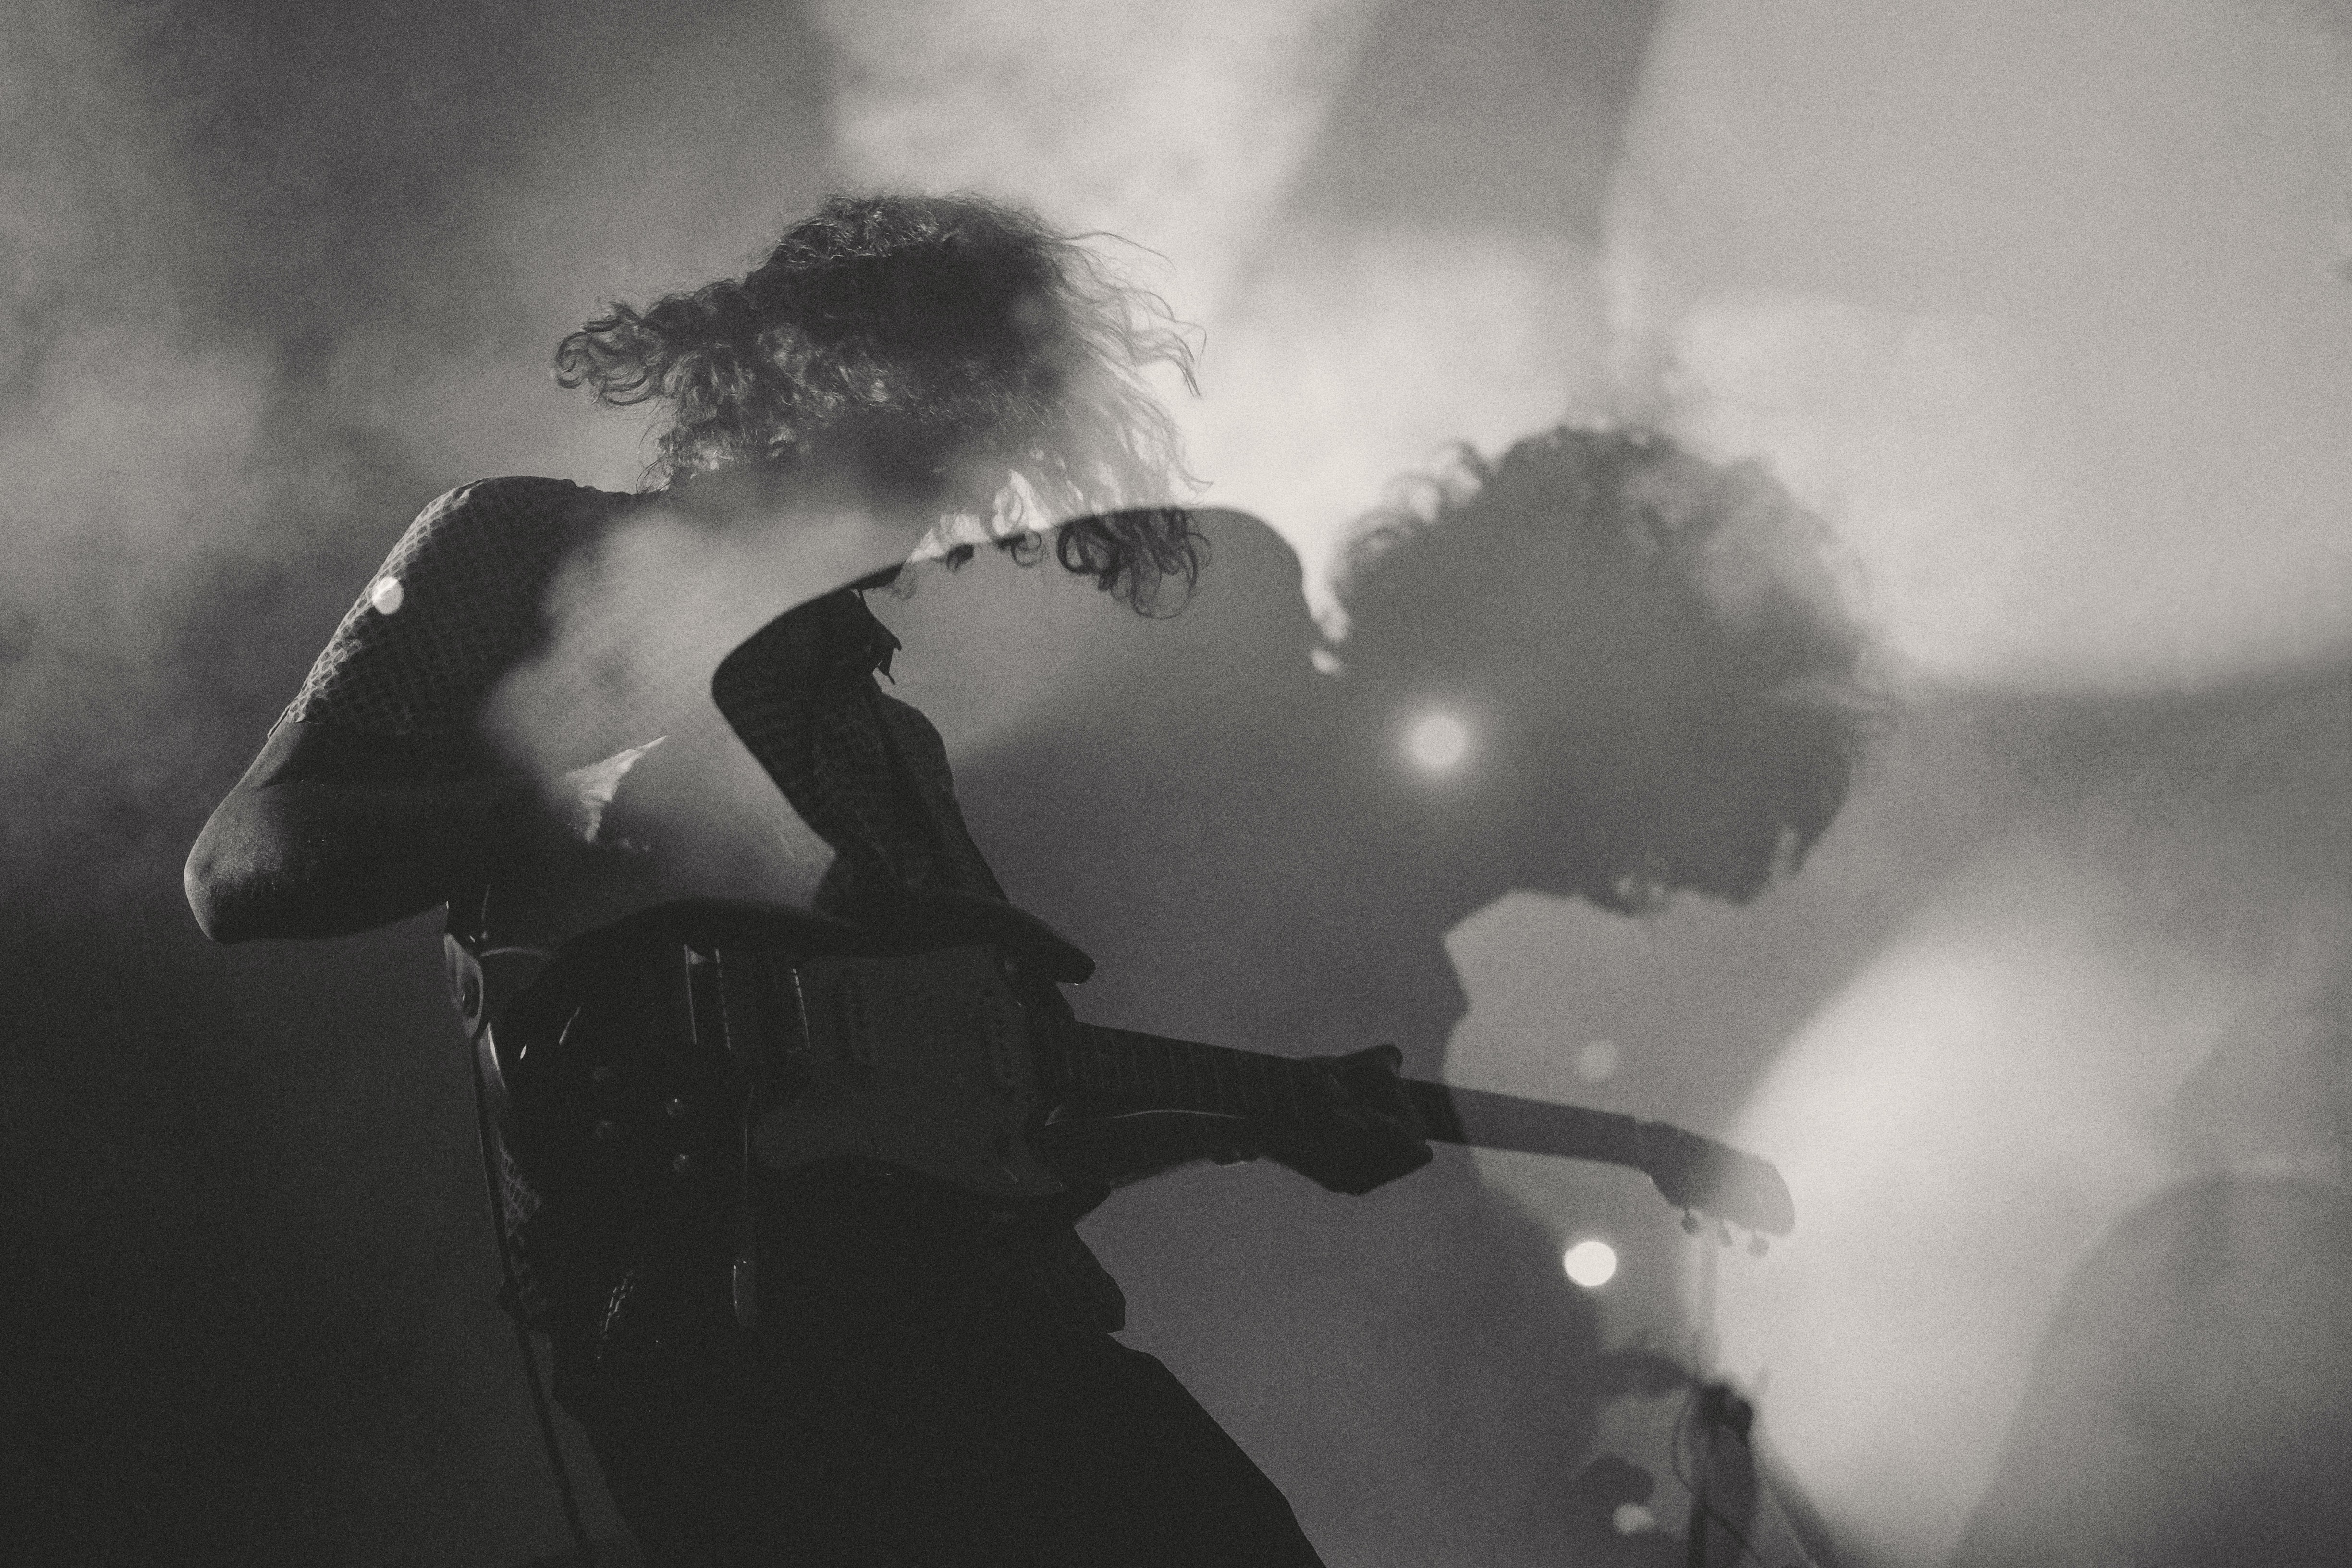 A black-and-white shot of a man playing electric guitar in double exposure